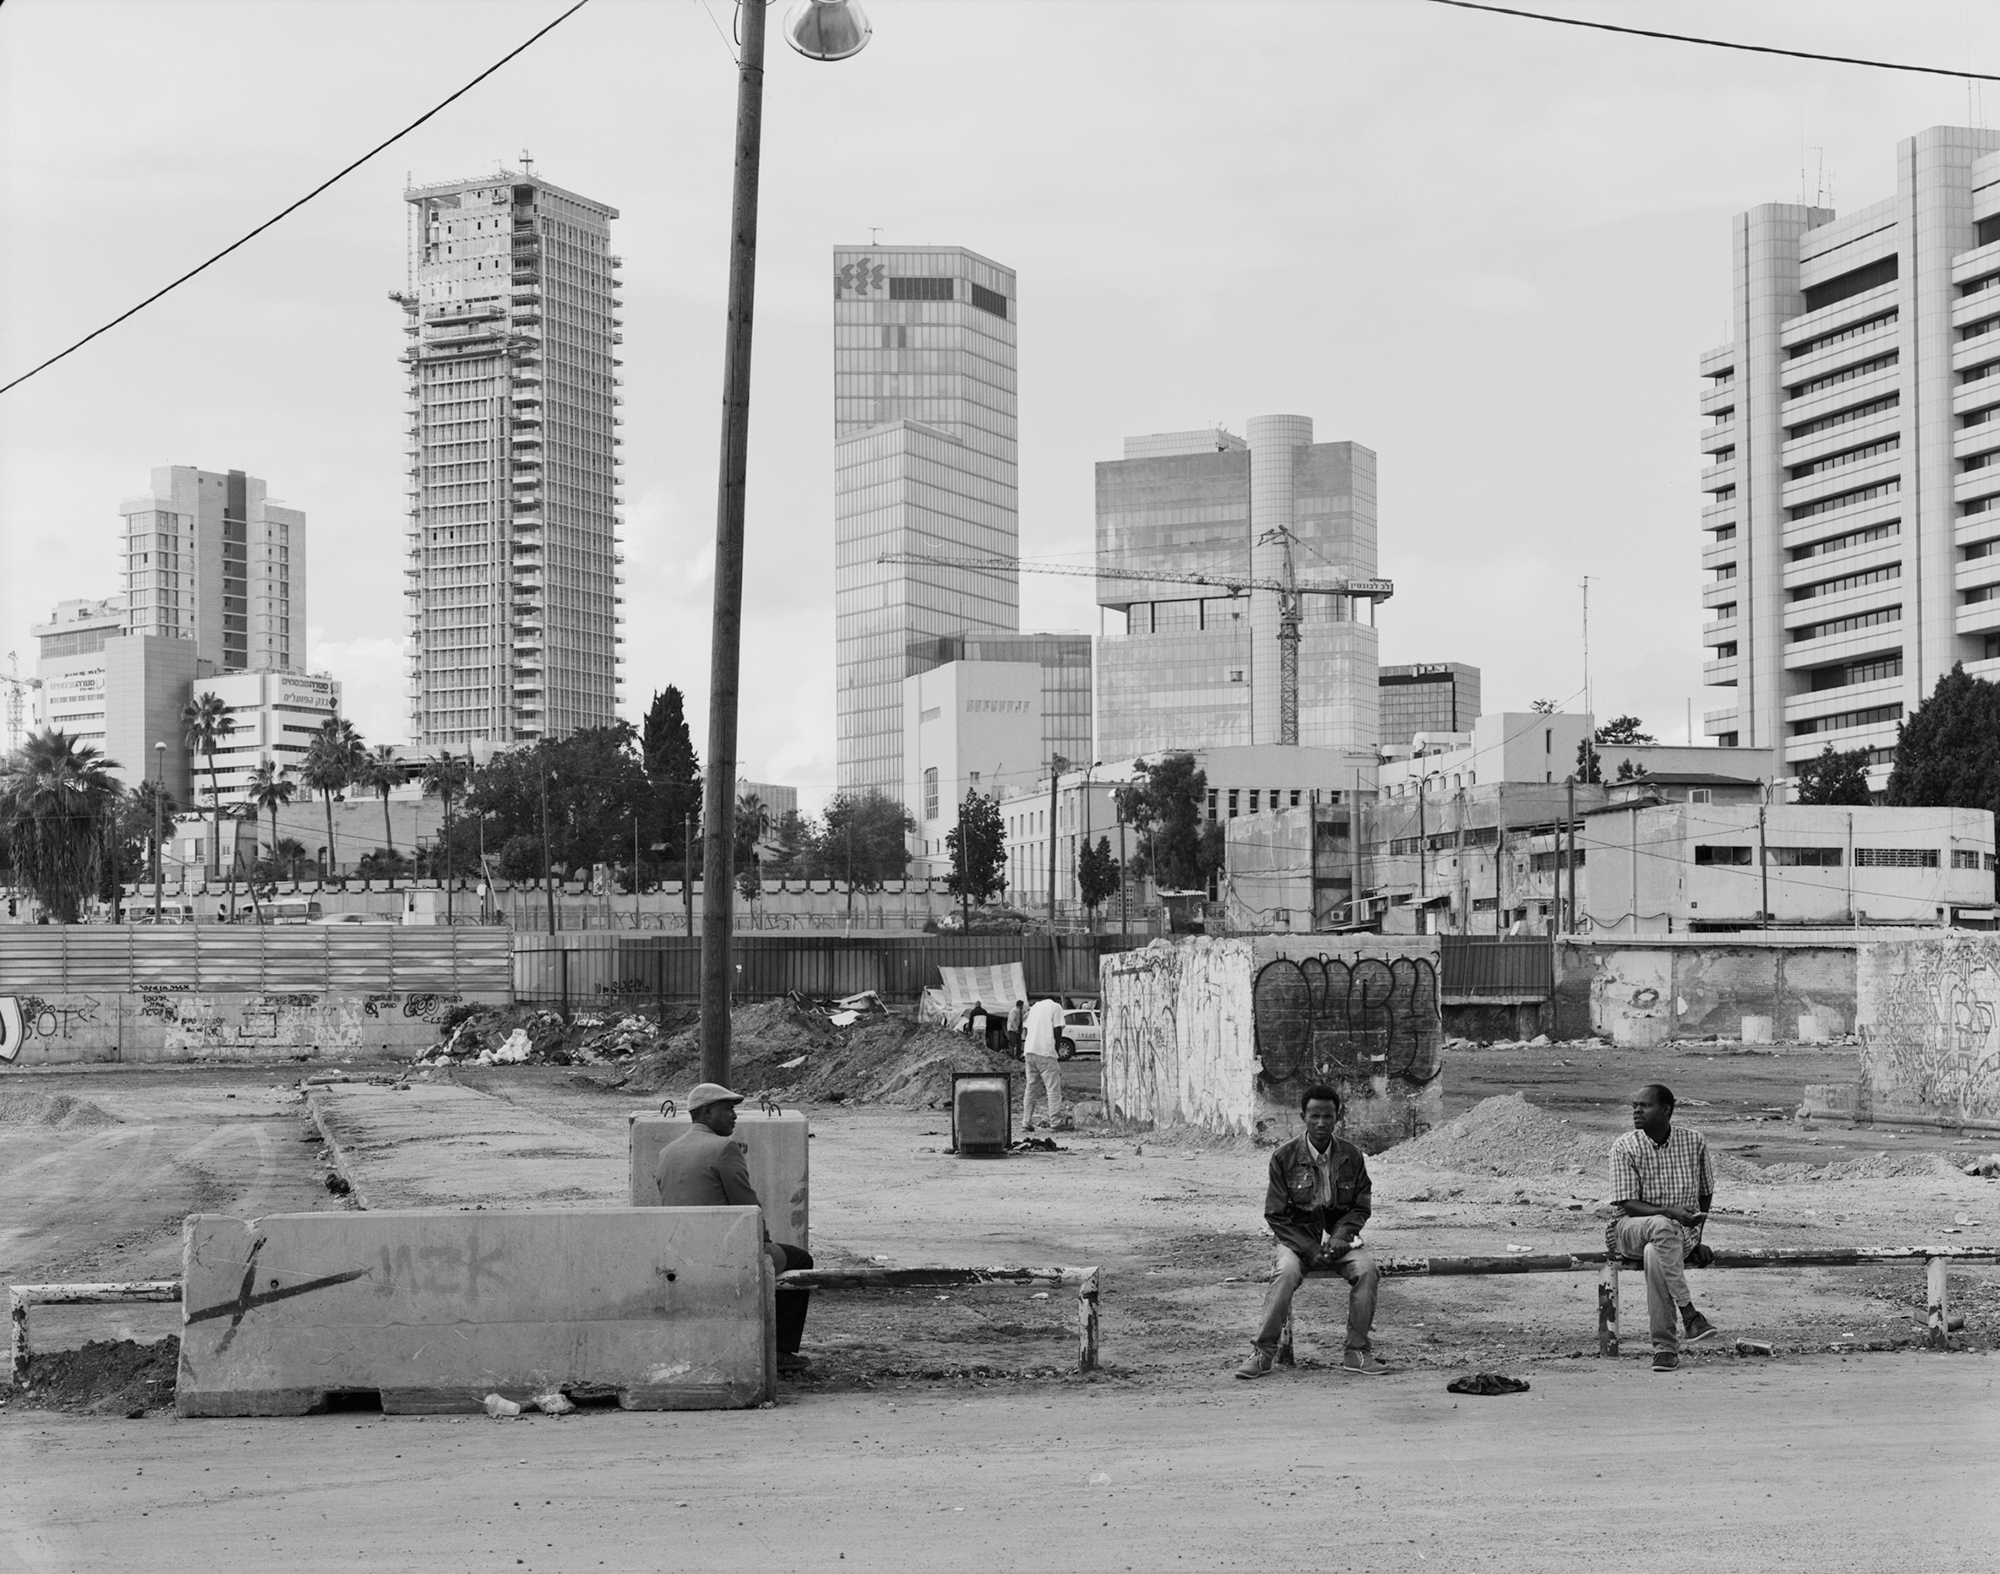 Old Central Bus Station. Neve Sha'anan, Tel Aviv 2014